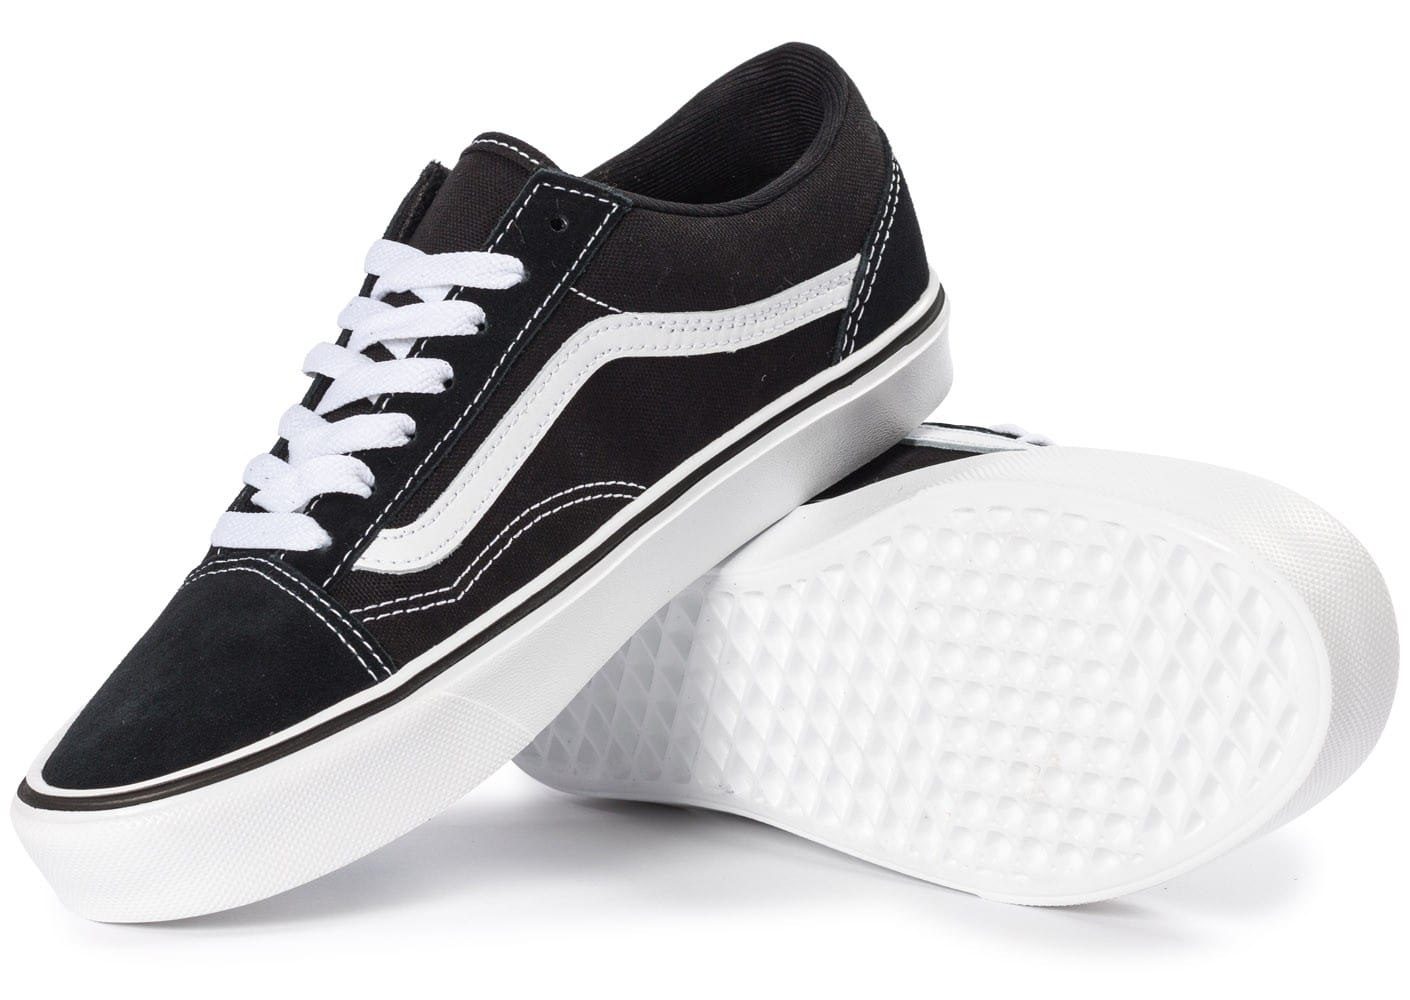 vans old skool noire et blanche chaussures chaussures chausport. Black Bedroom Furniture Sets. Home Design Ideas